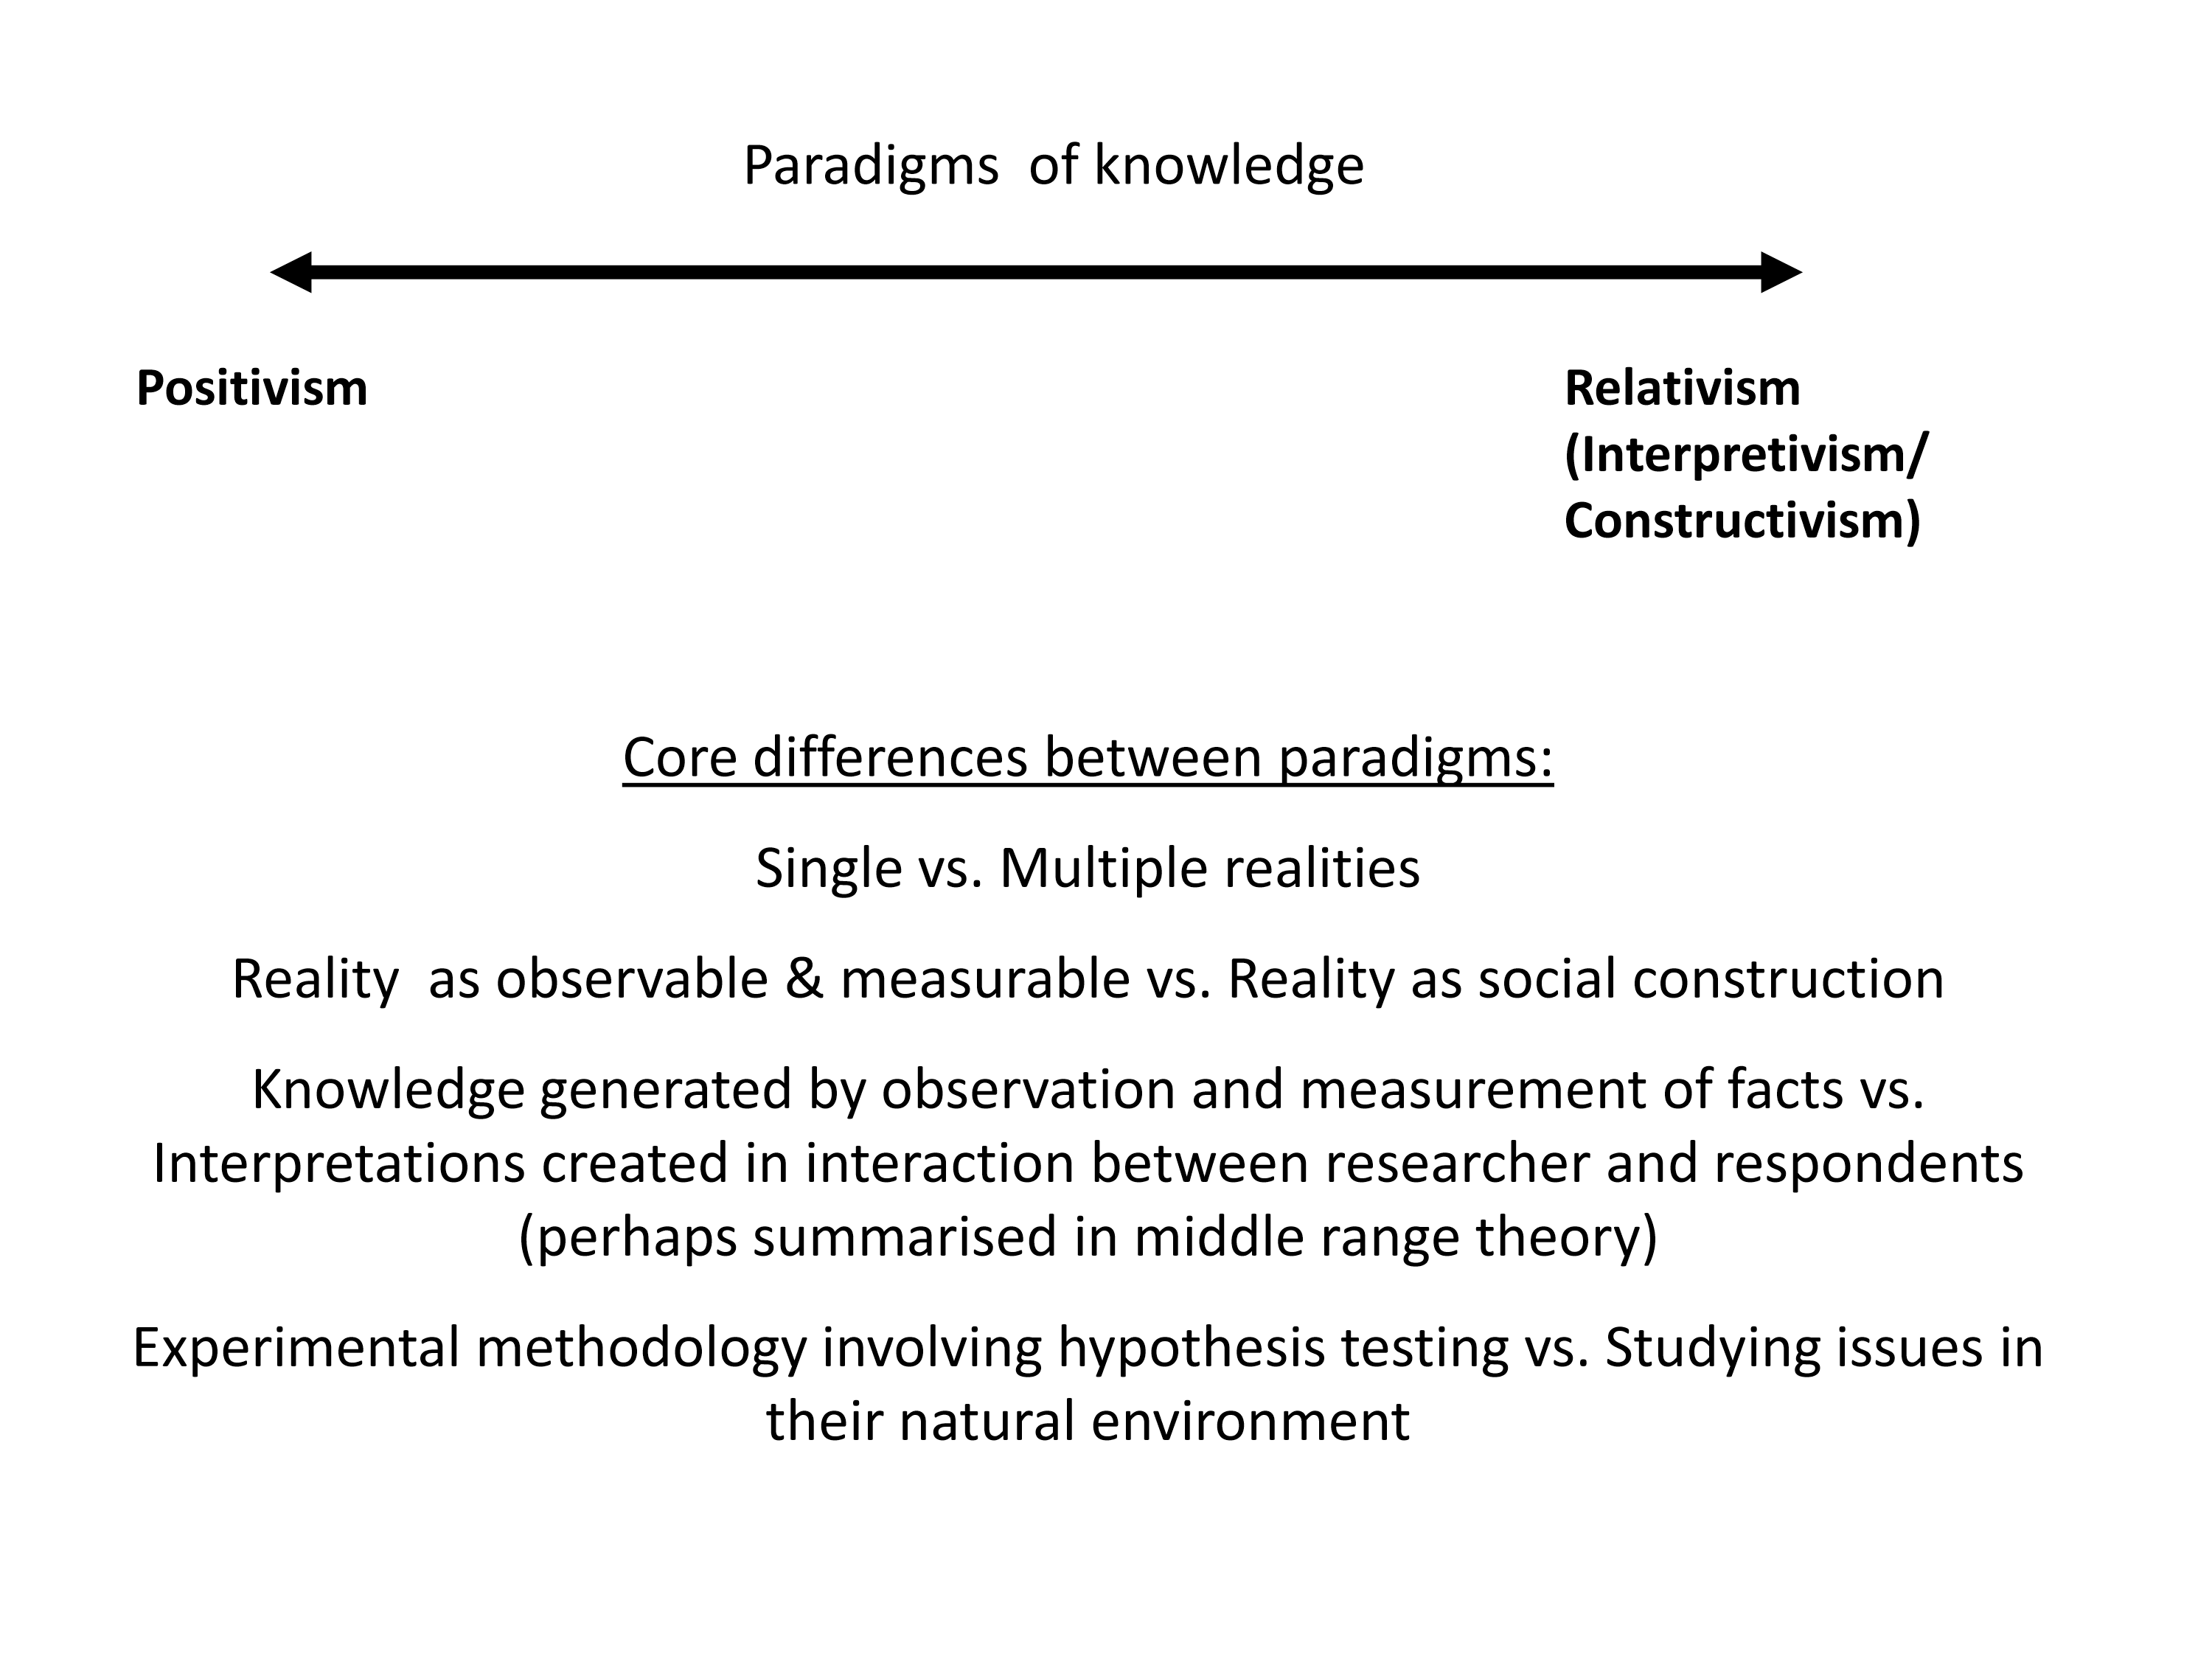 Core differences between knowledge paradigms.